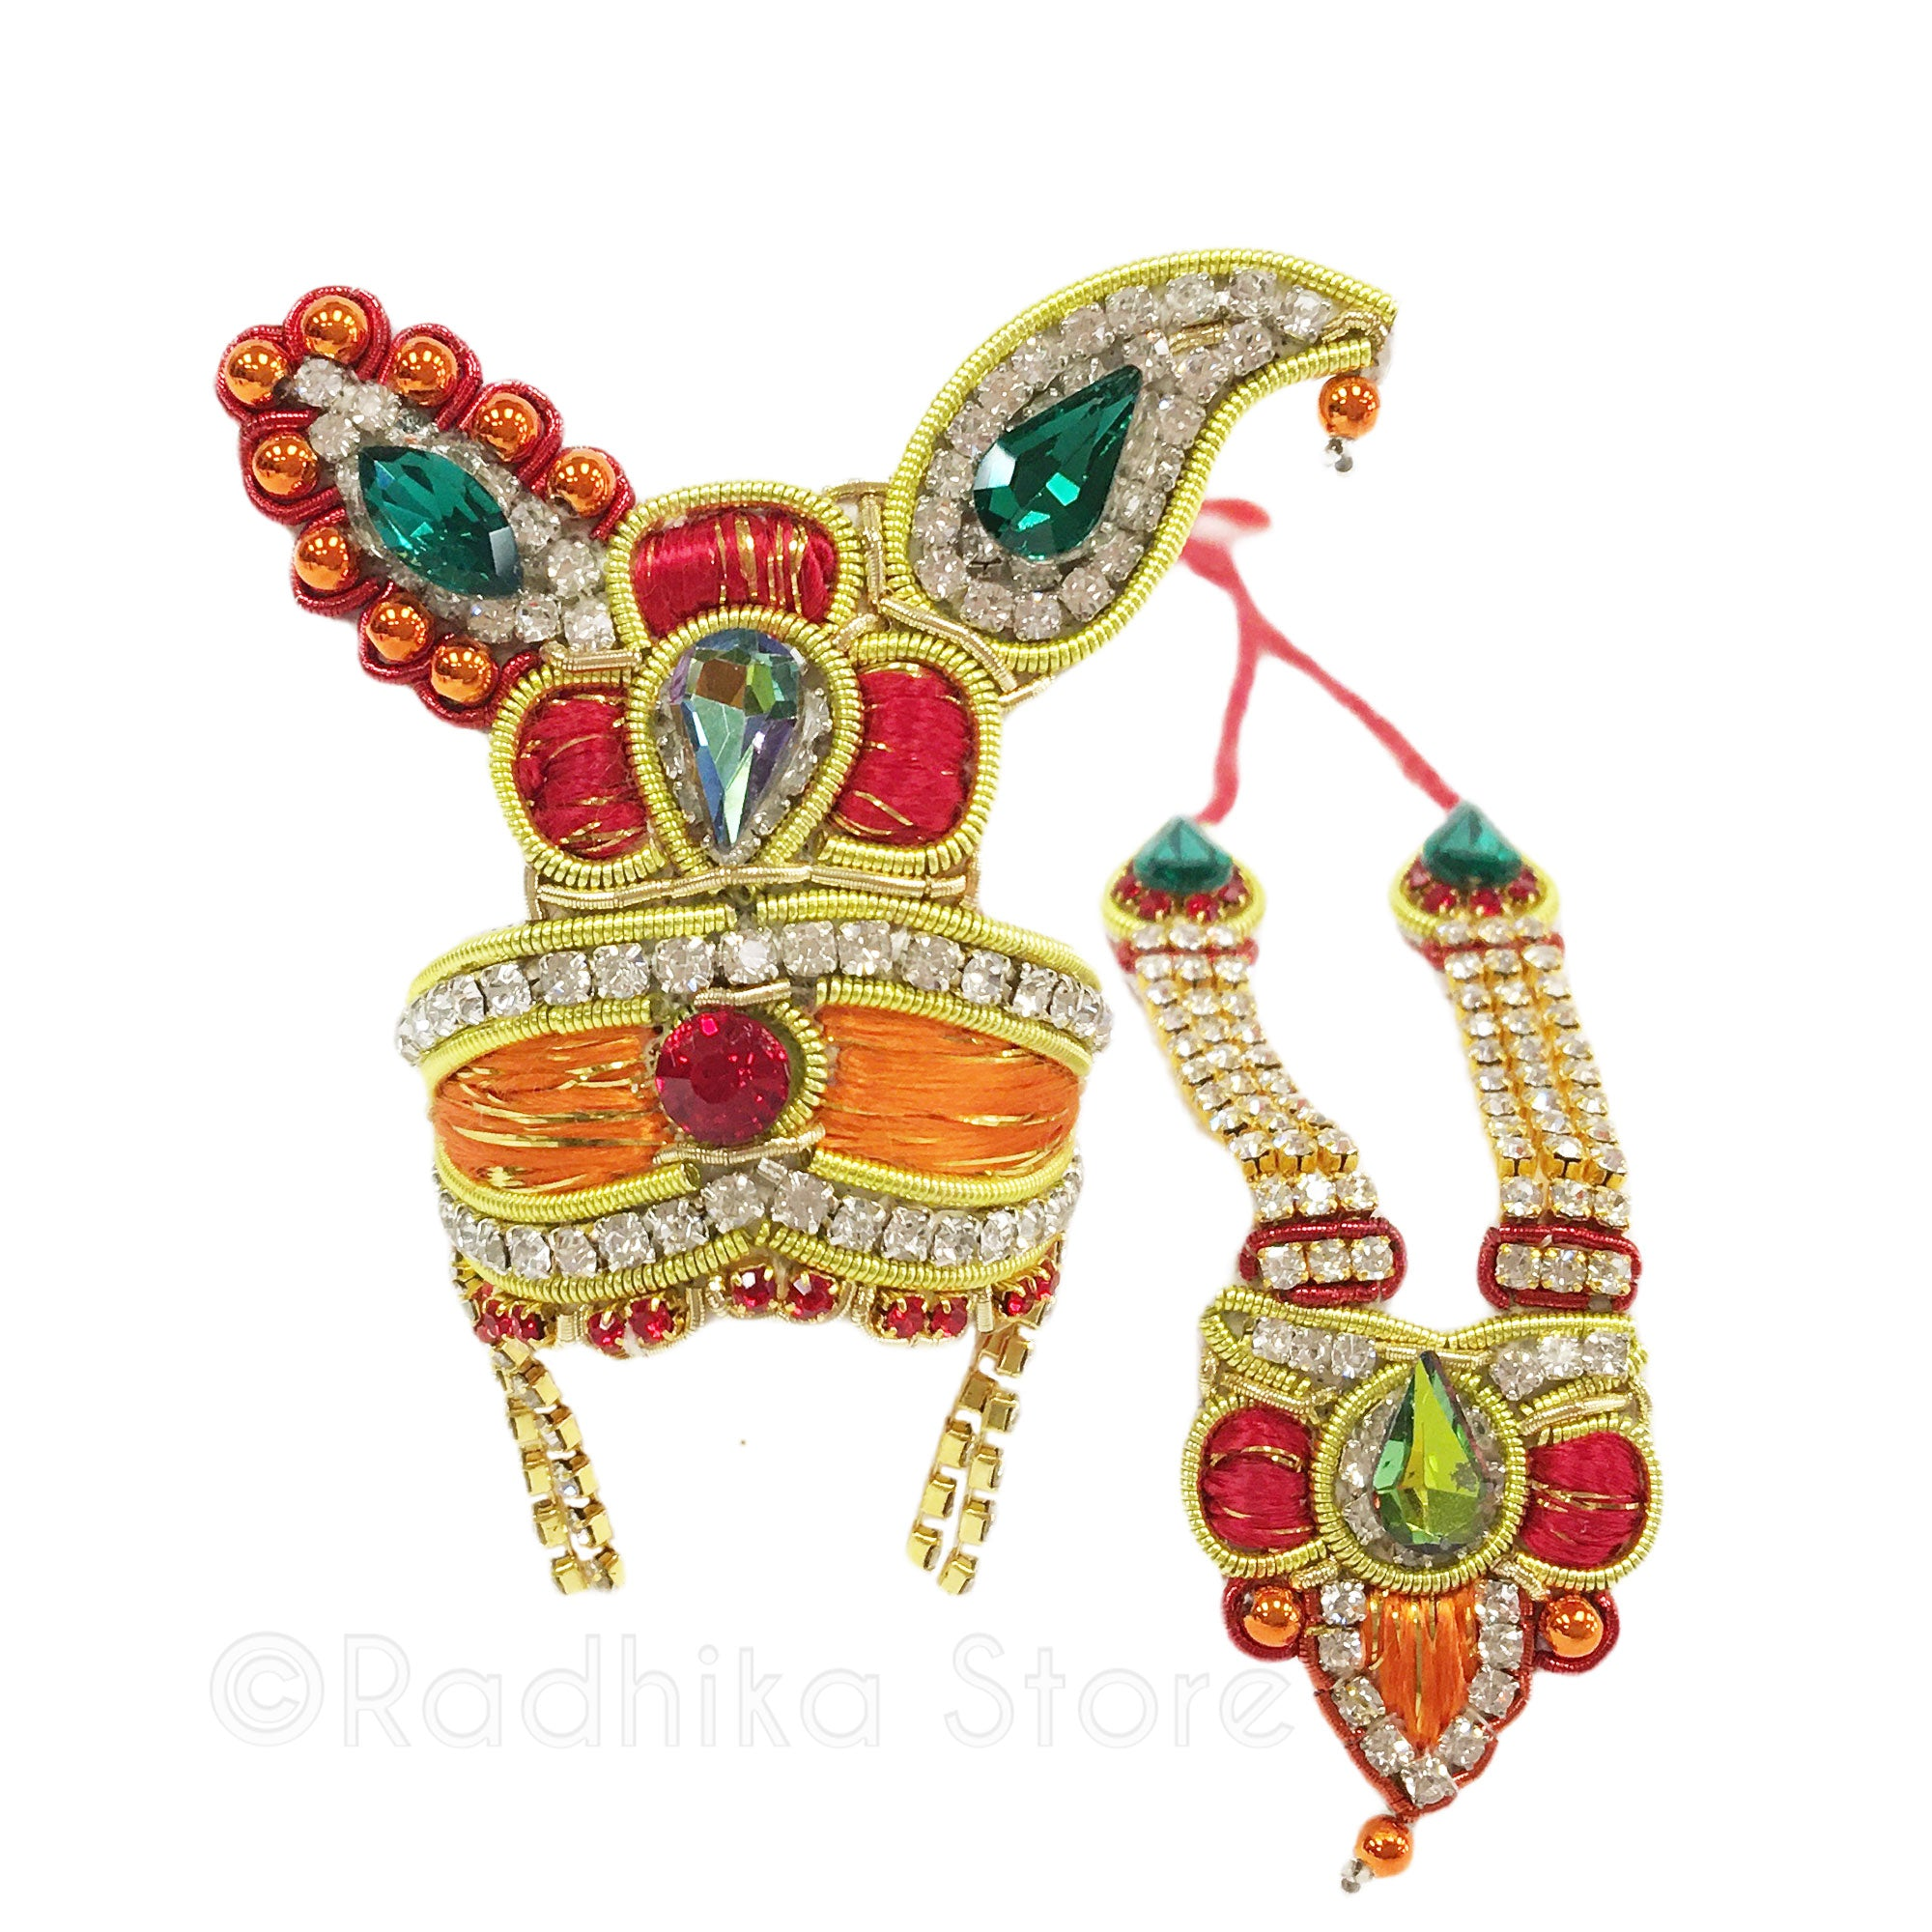 Kusham Sarovara Flower - Deity Crown and Necklace Set